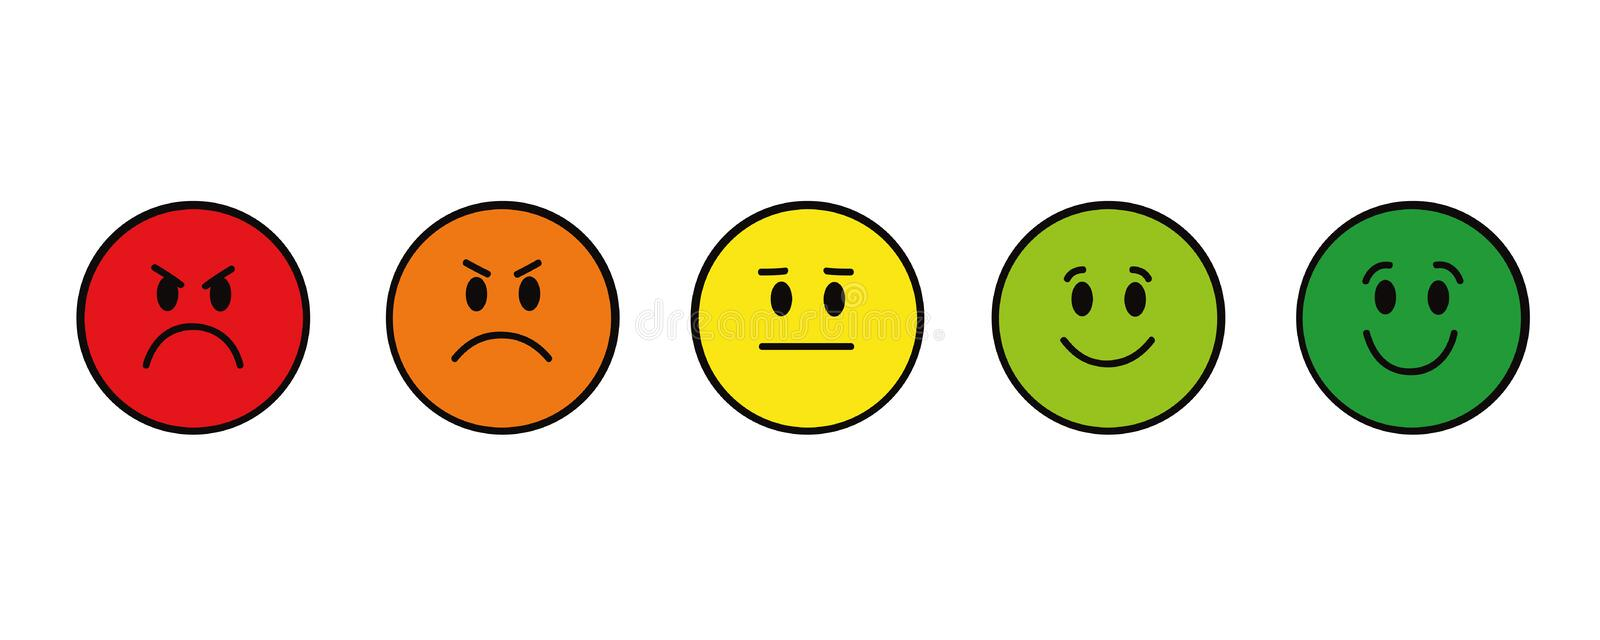 Rating smiley faces red to green round stock illustration